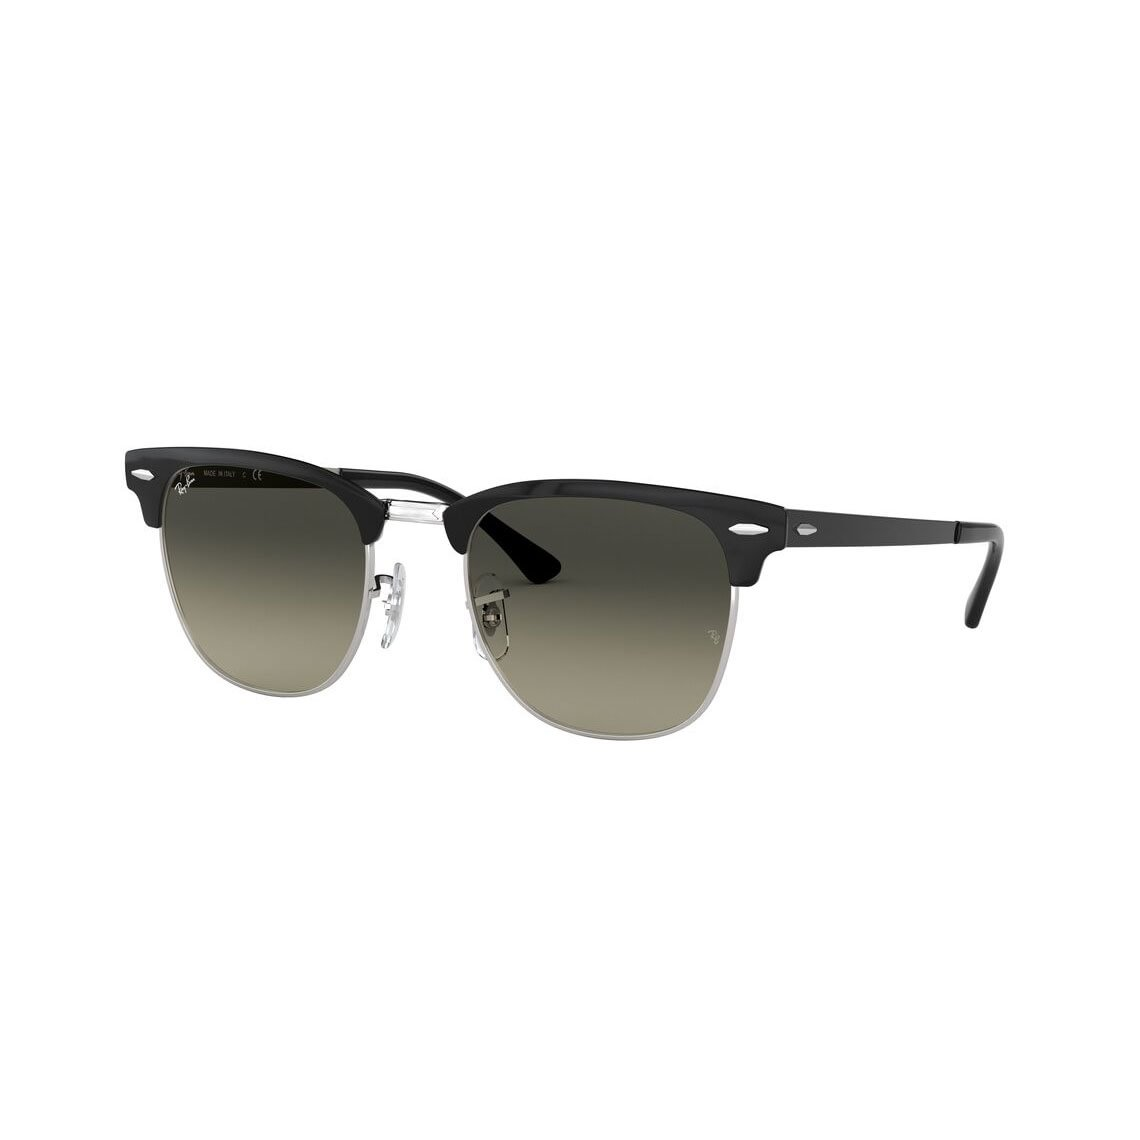 Ray-Ban Clubmaster Metal RB3716 900471 51